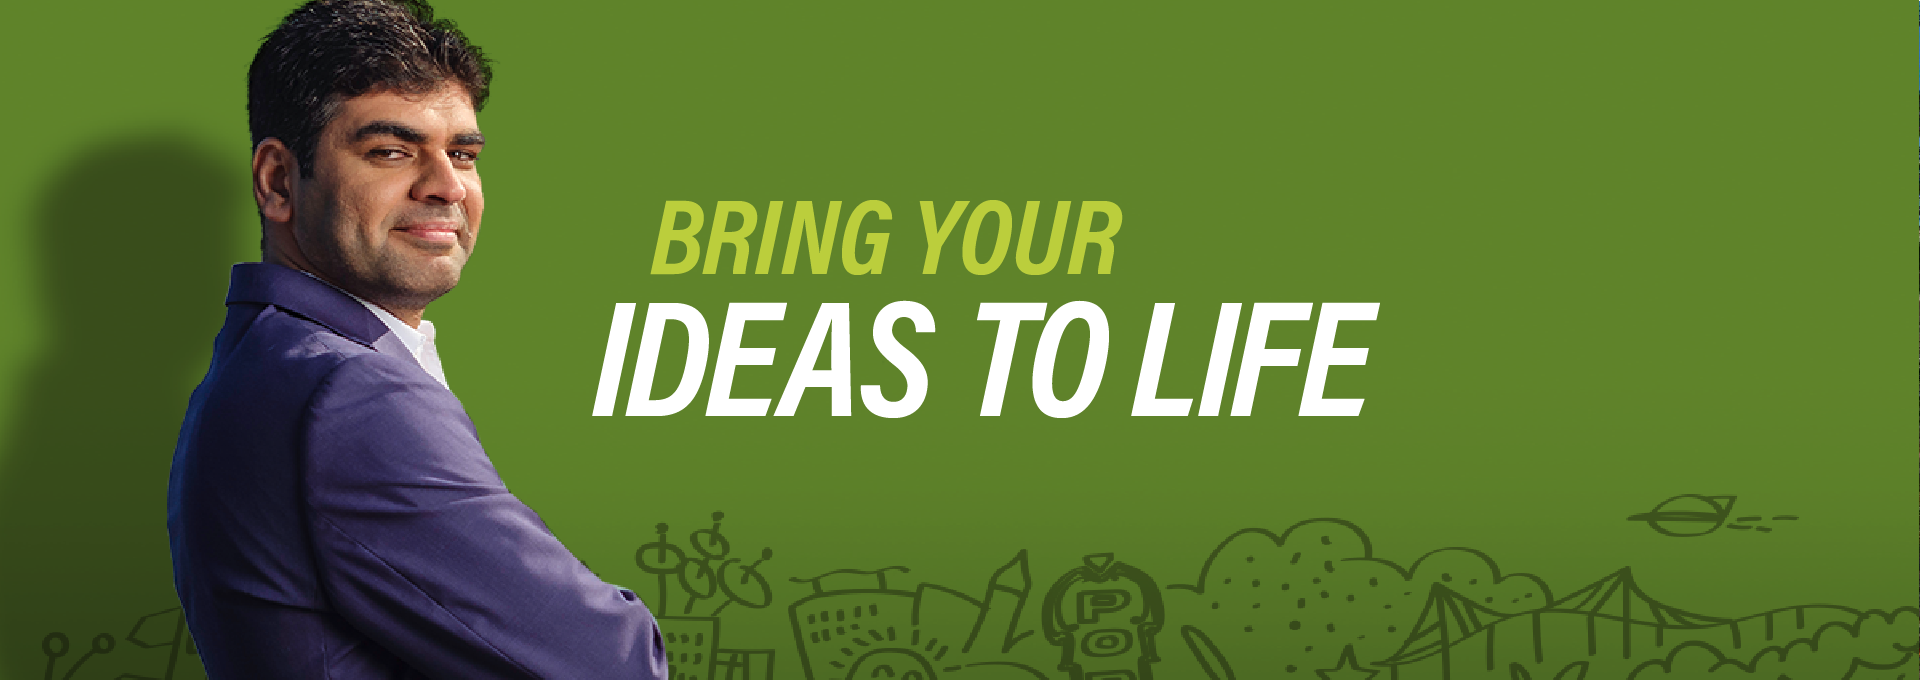 Bring your Ideas to Life Banner